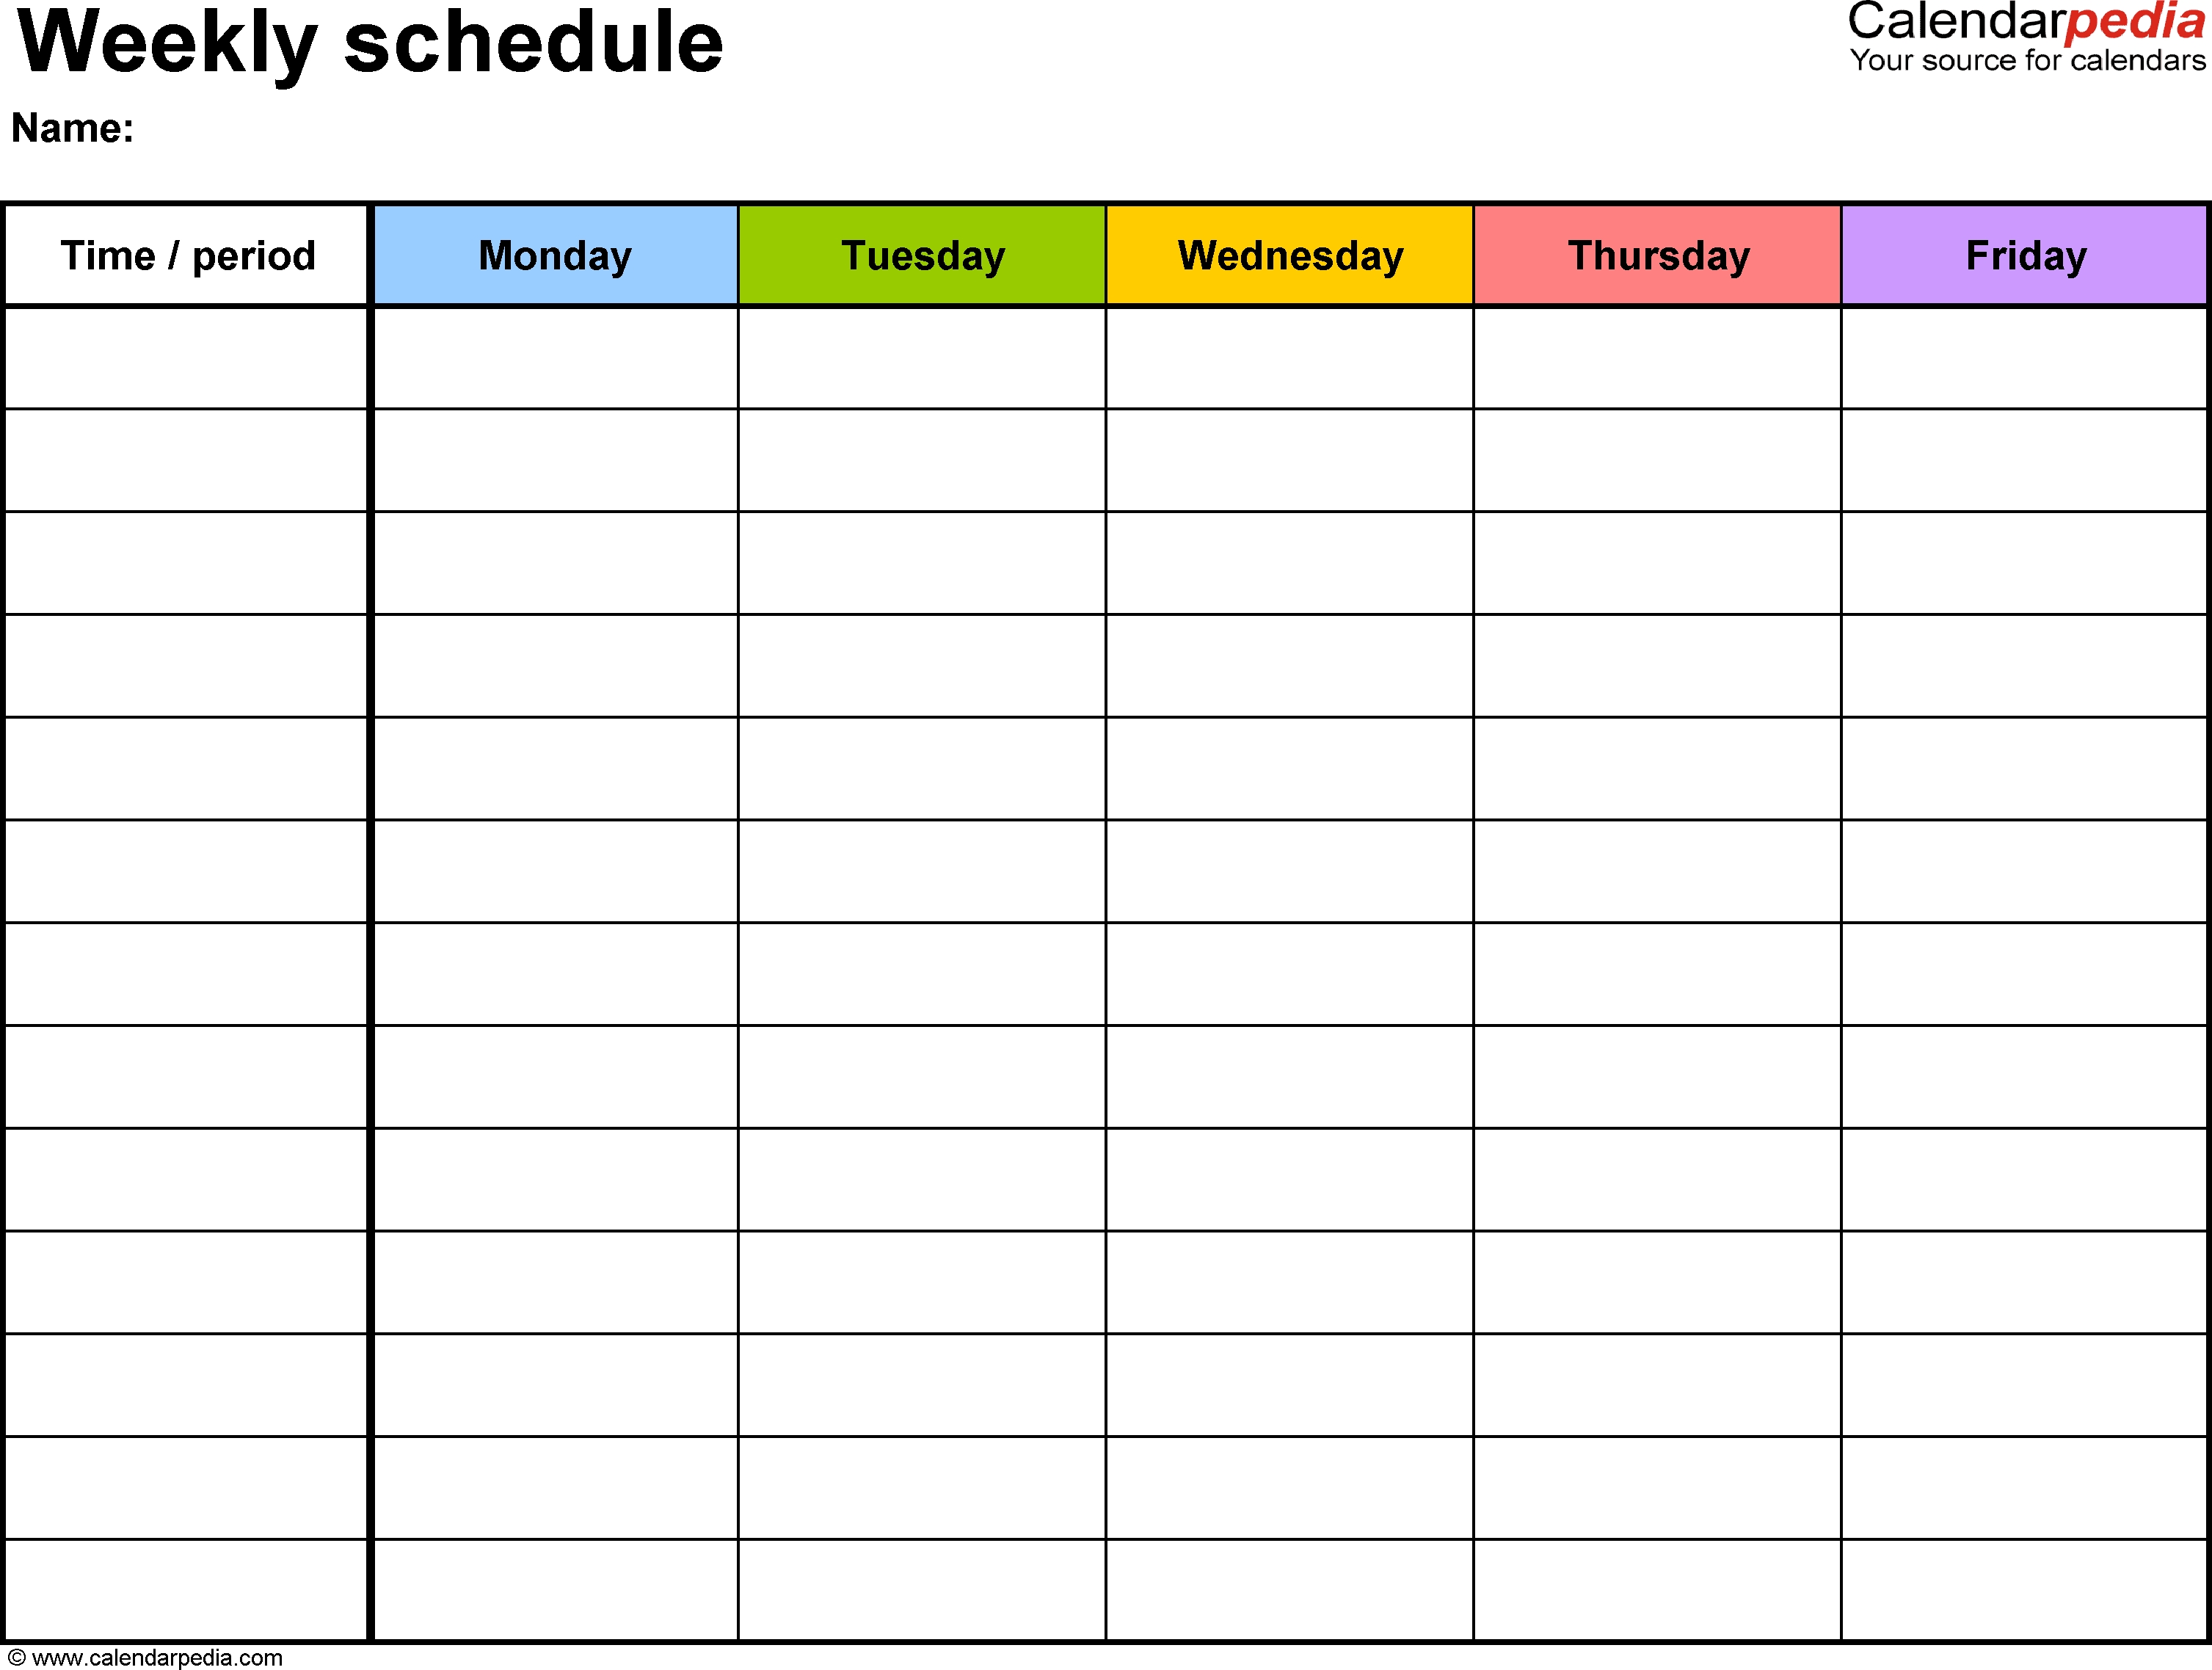 Free Weekly Schedule Templates For Word - 18 Templates inside 7 Day 12 Week Planner Blank